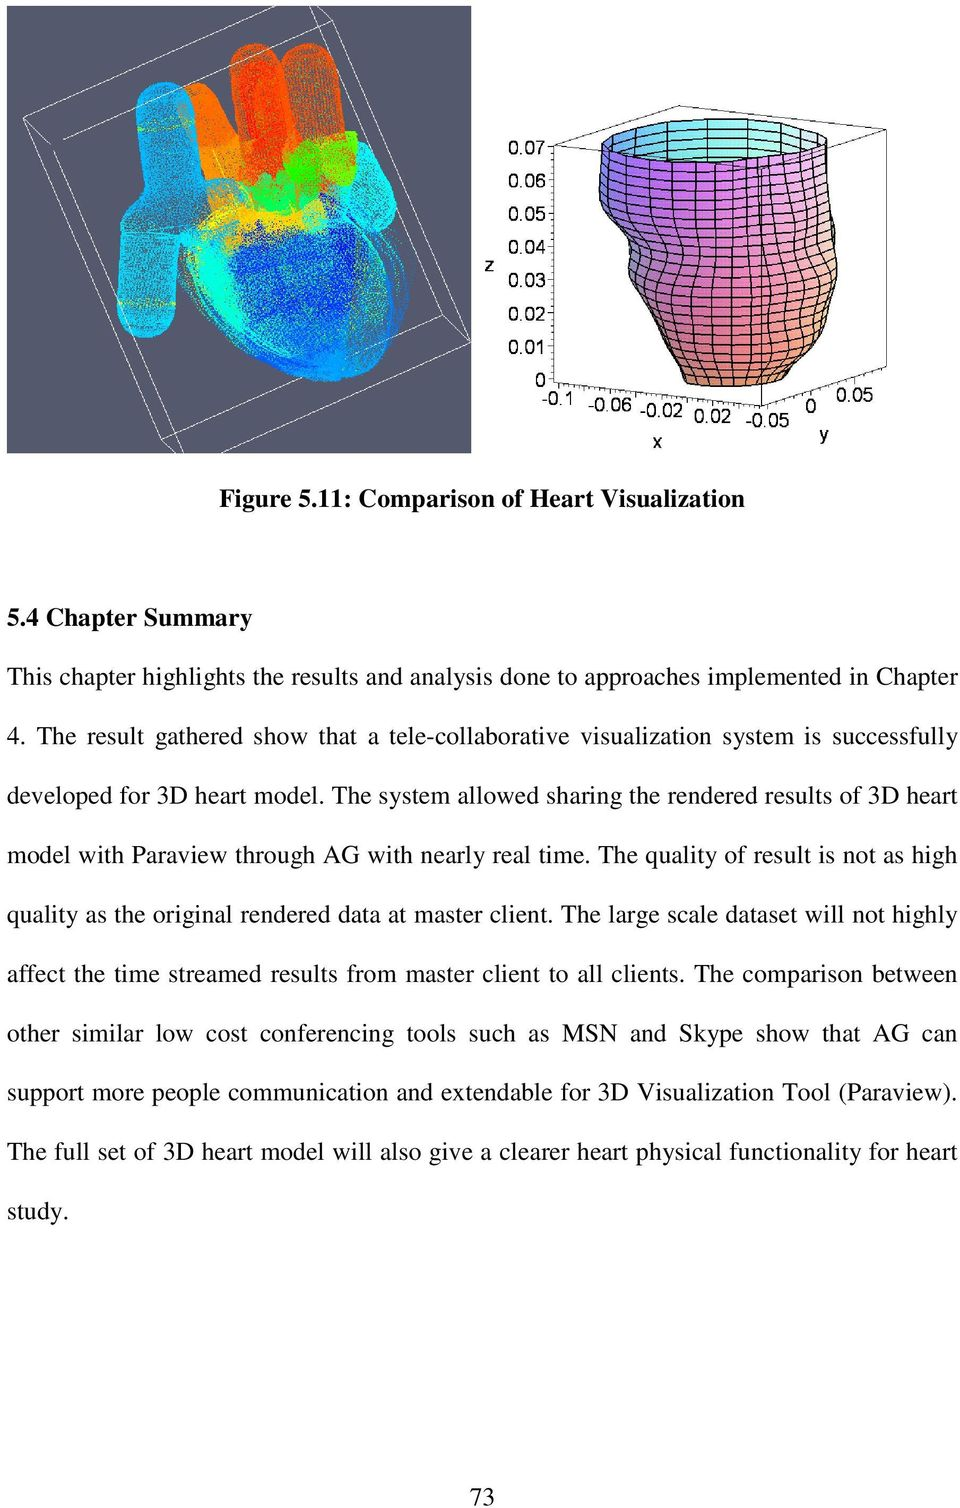 The system allowed sharing the rendered results of 3D heart model with Paraview through AG with nearly real time.